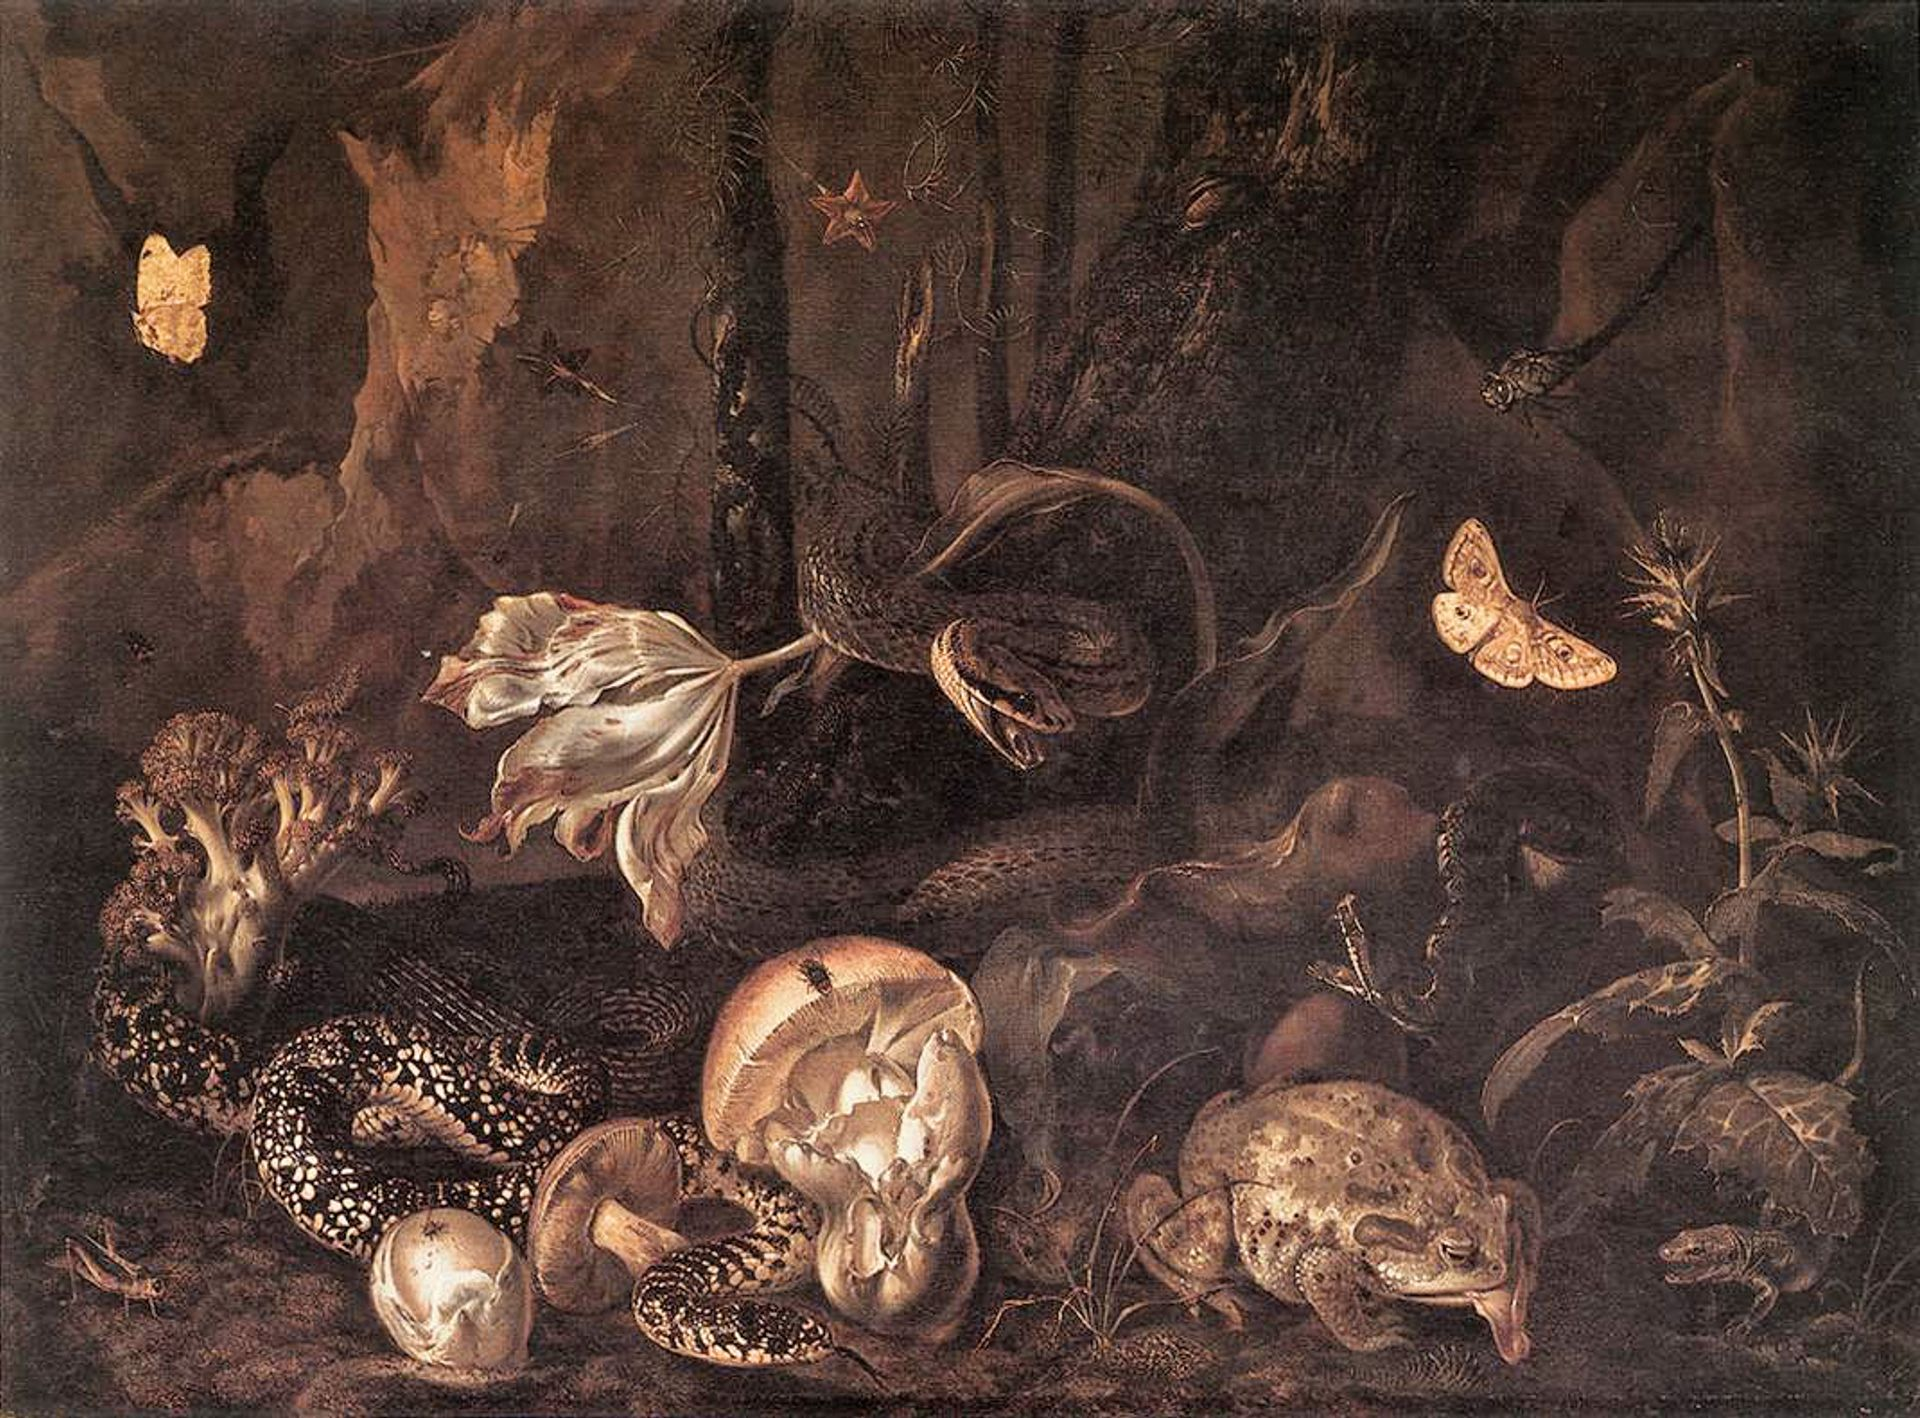 … you're sure of a big surprise: Otto Marseus van Schrieck, Still-Life with Insects, Amphibians, and Reptiles (1662) Courtesy of the Herzog Anton Ulrich-Museum, Braunschweig